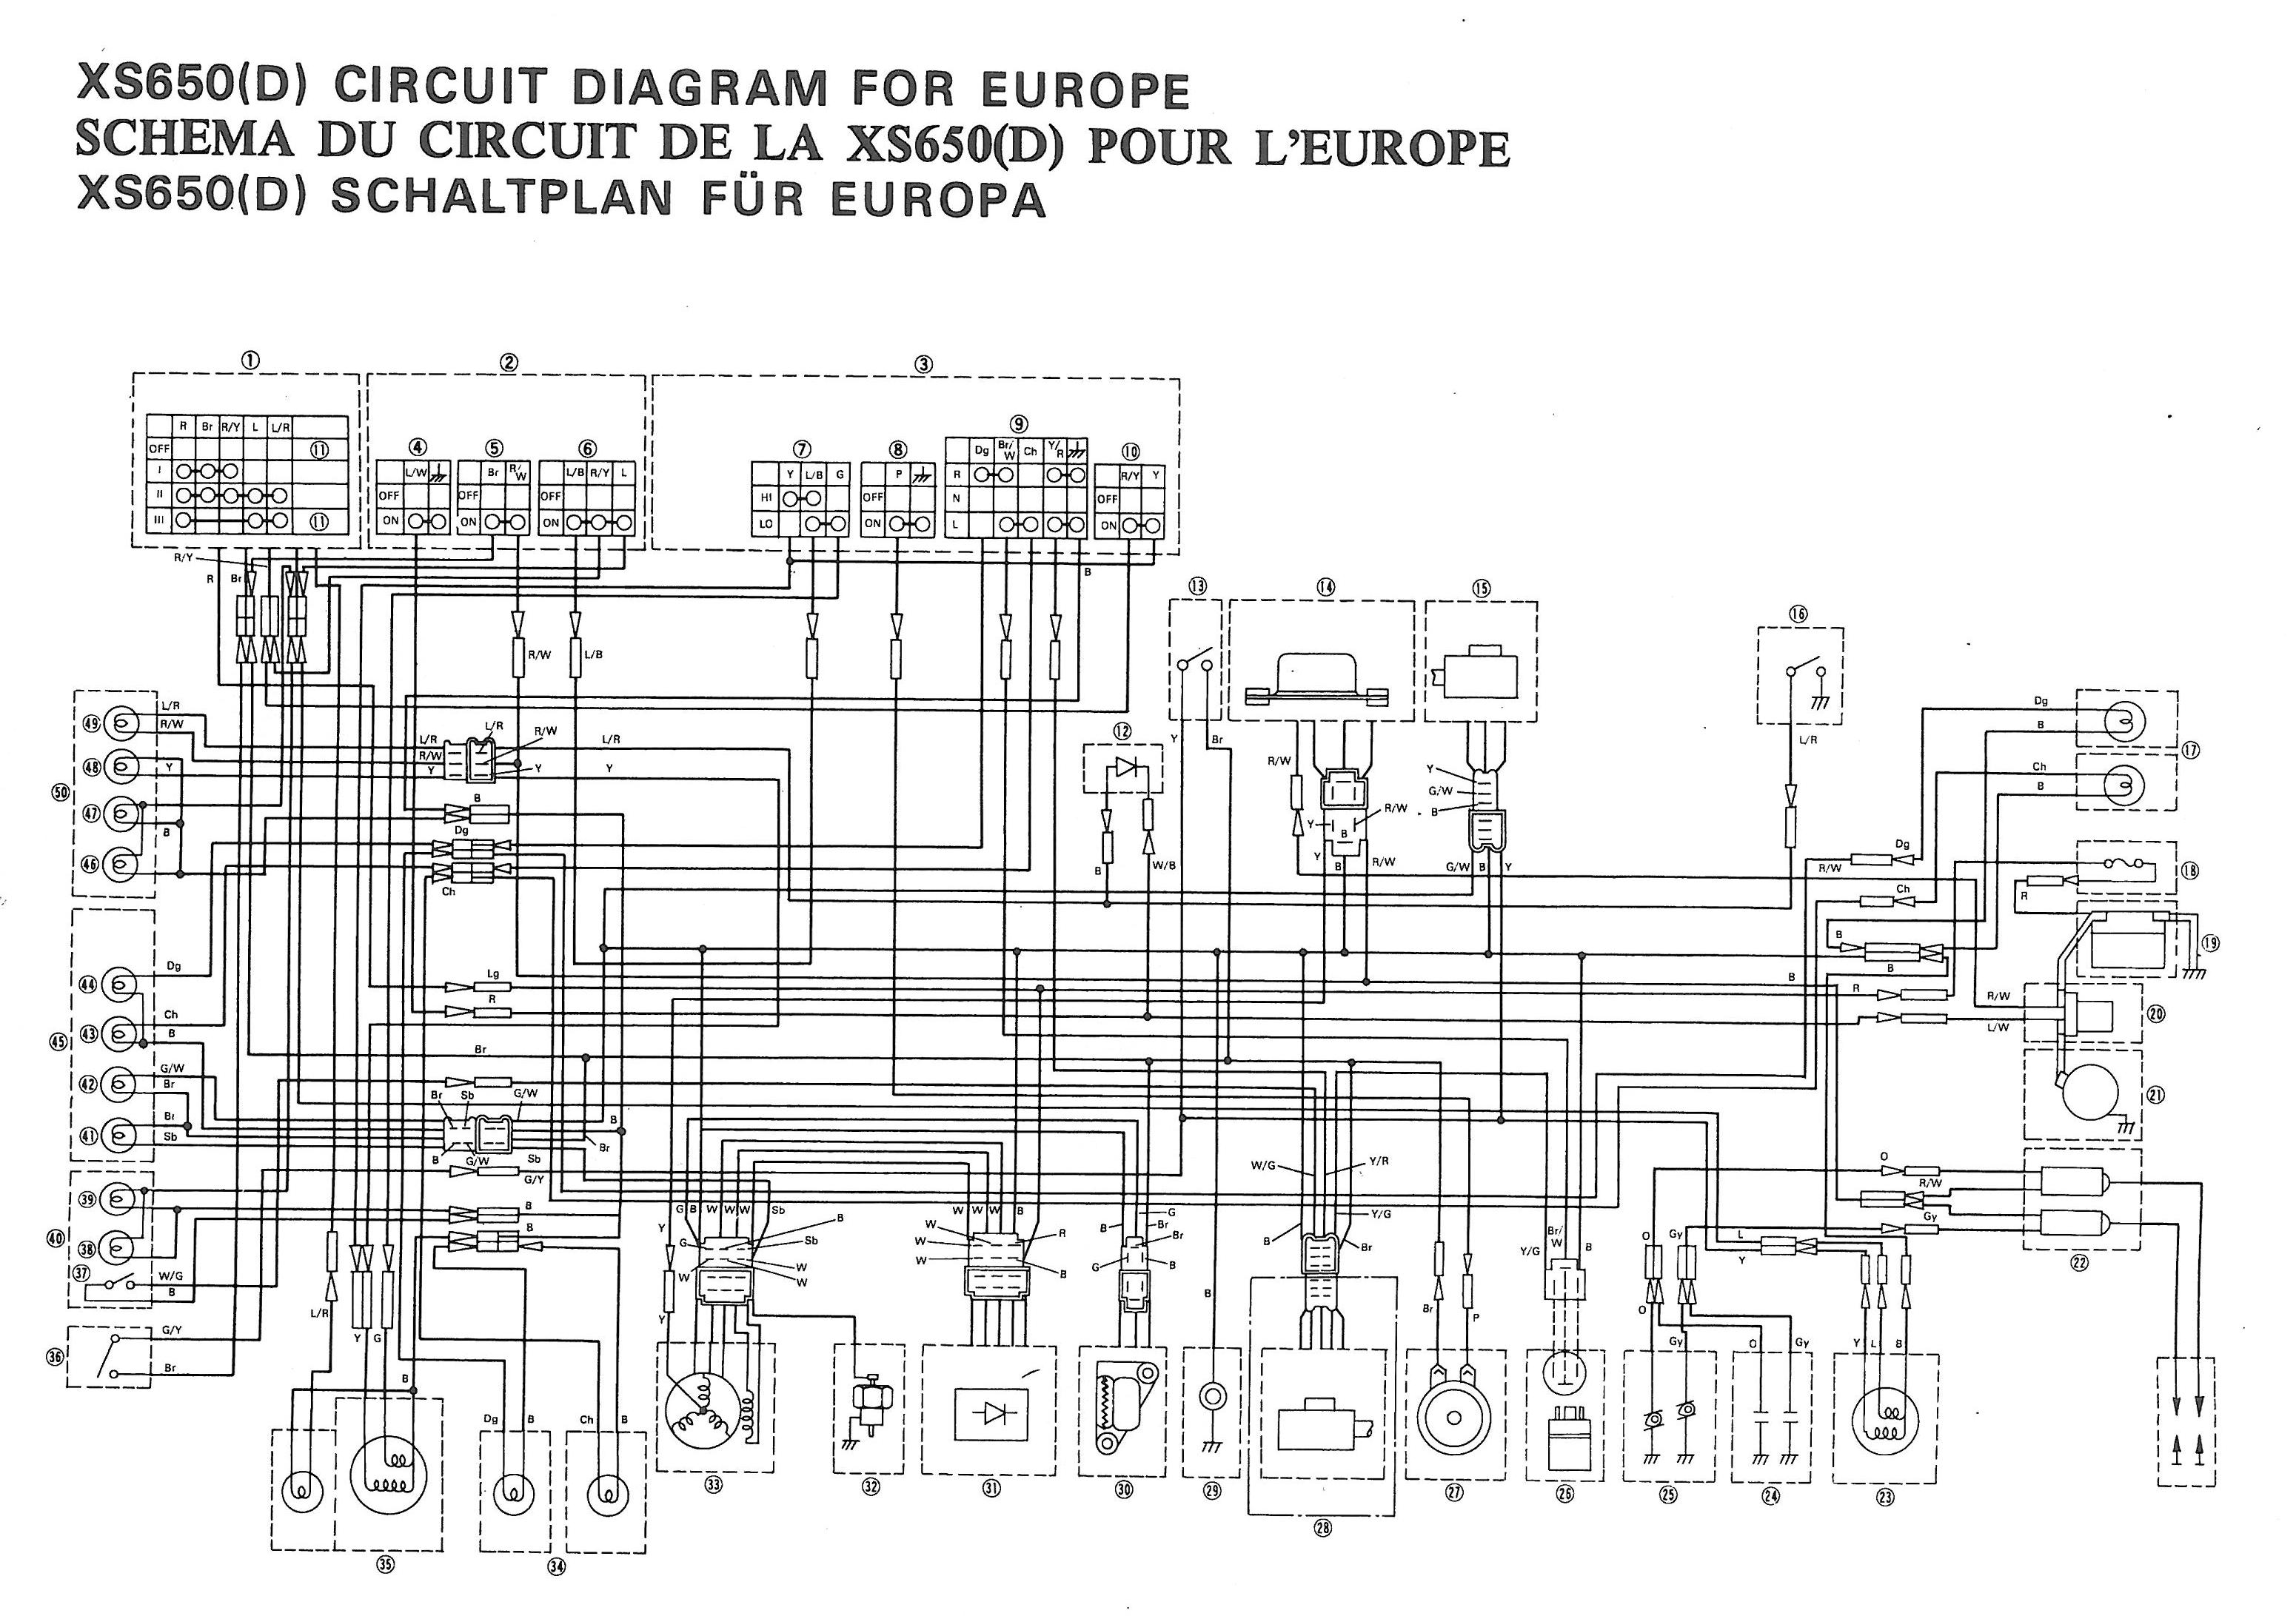 77 xs d wiring europe xs650 77 xs d wiring diagram thexscafe XS2 Bow String at gsmportal.co